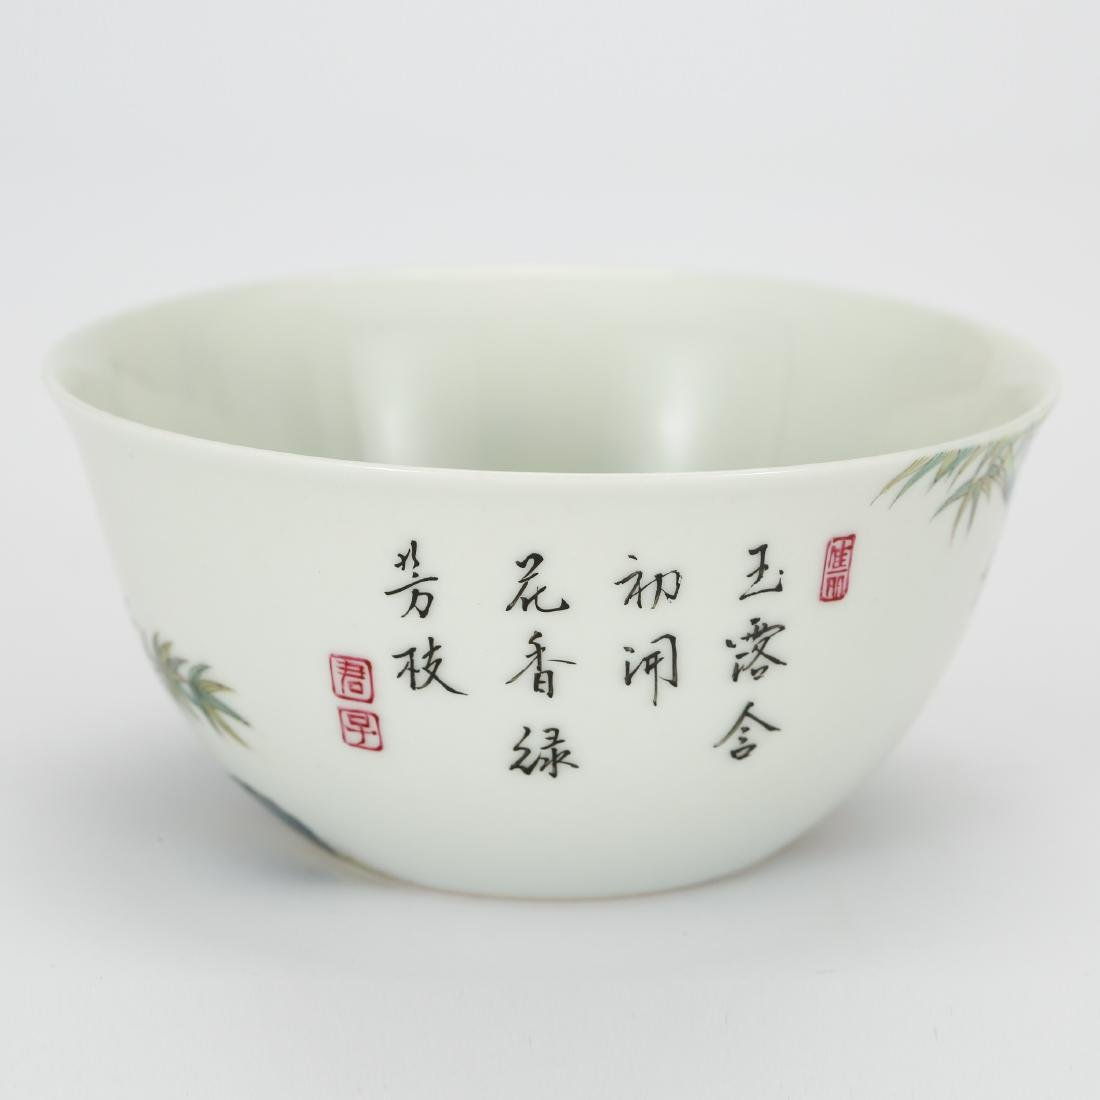 CHINESE PAINTED PORCELAIN BOWL - 3